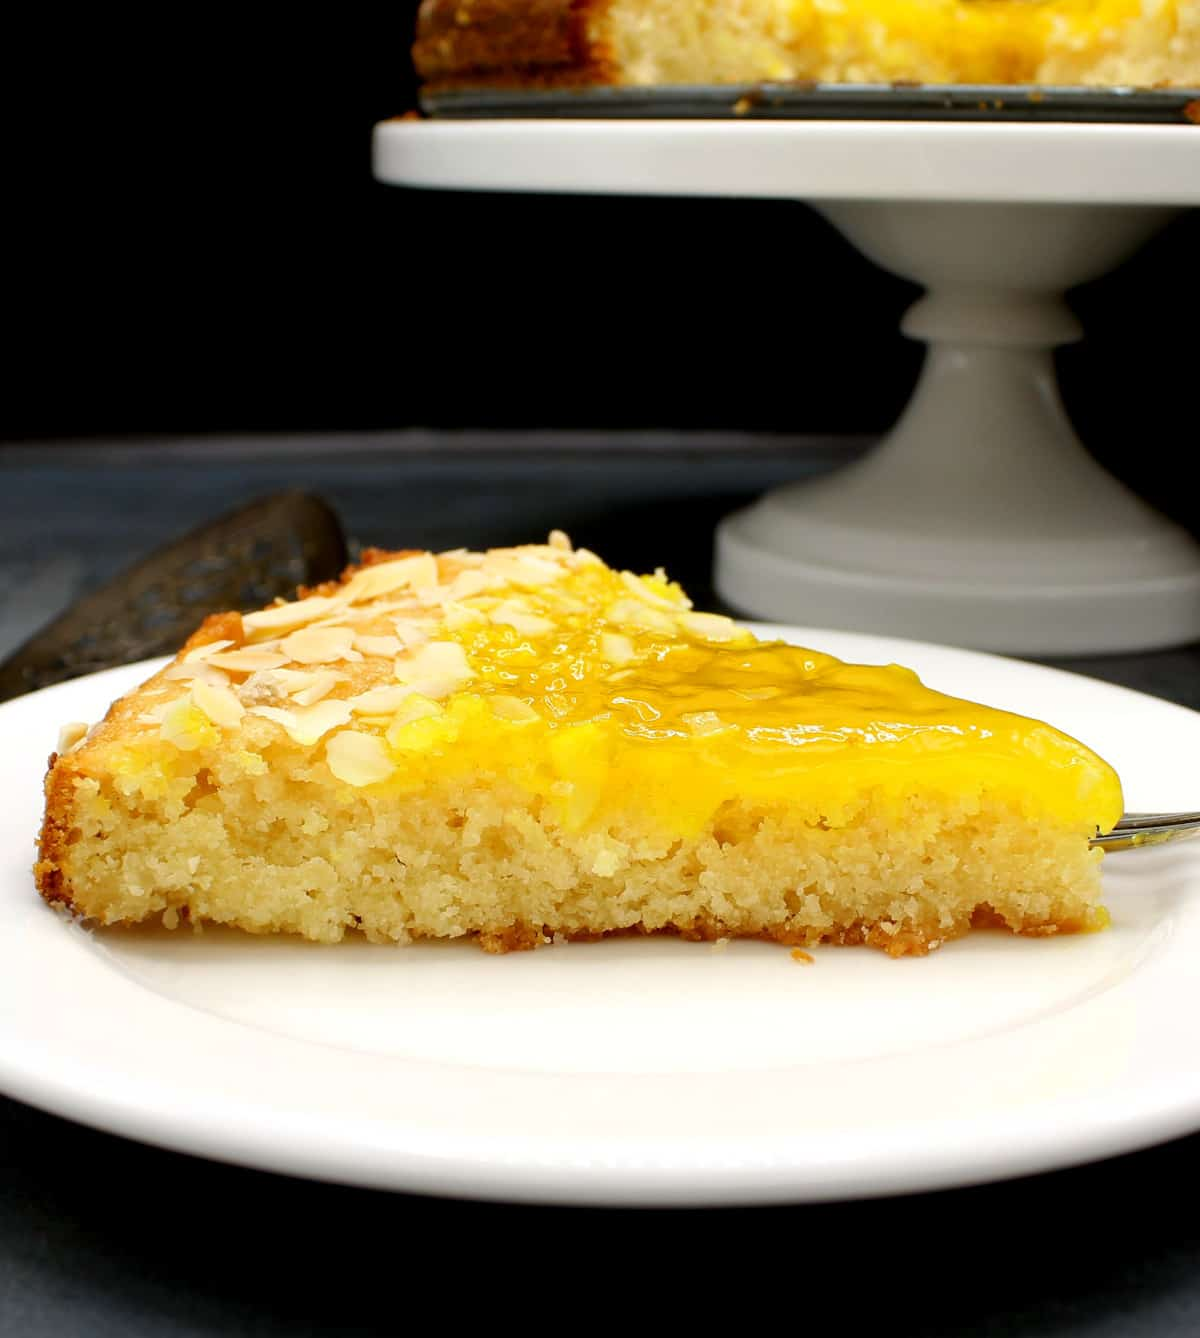 Photo of a slice of vegan lemon cake with lemon curd topping on a white plate with the full cake in background.